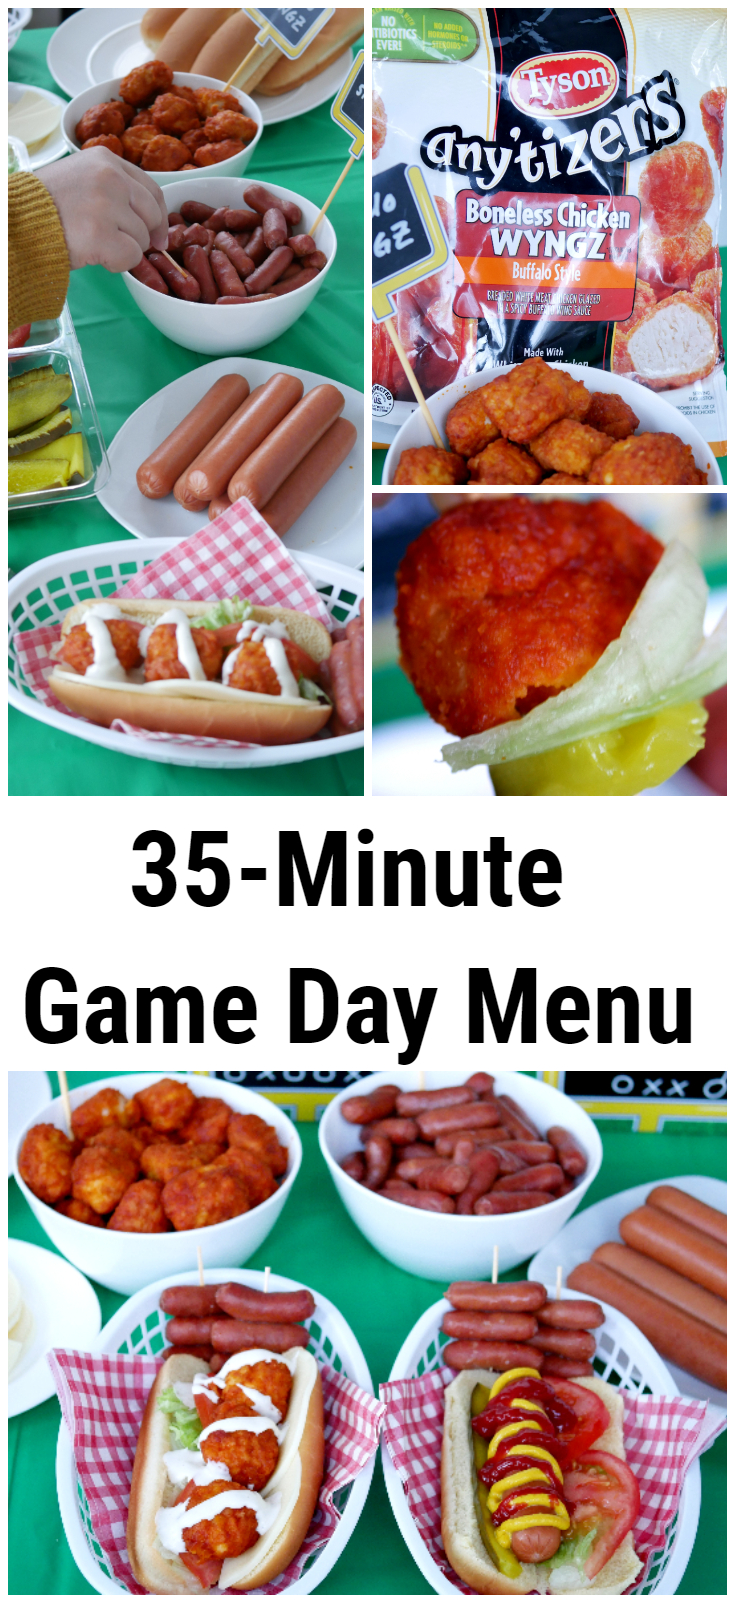 #Ad Spend less time preparing game day food with the help of @TysonBrand @HillshireFarm @BallParkBrand and have your party spread ready in 35-minutes! #TysonWinningLineup #Walmart